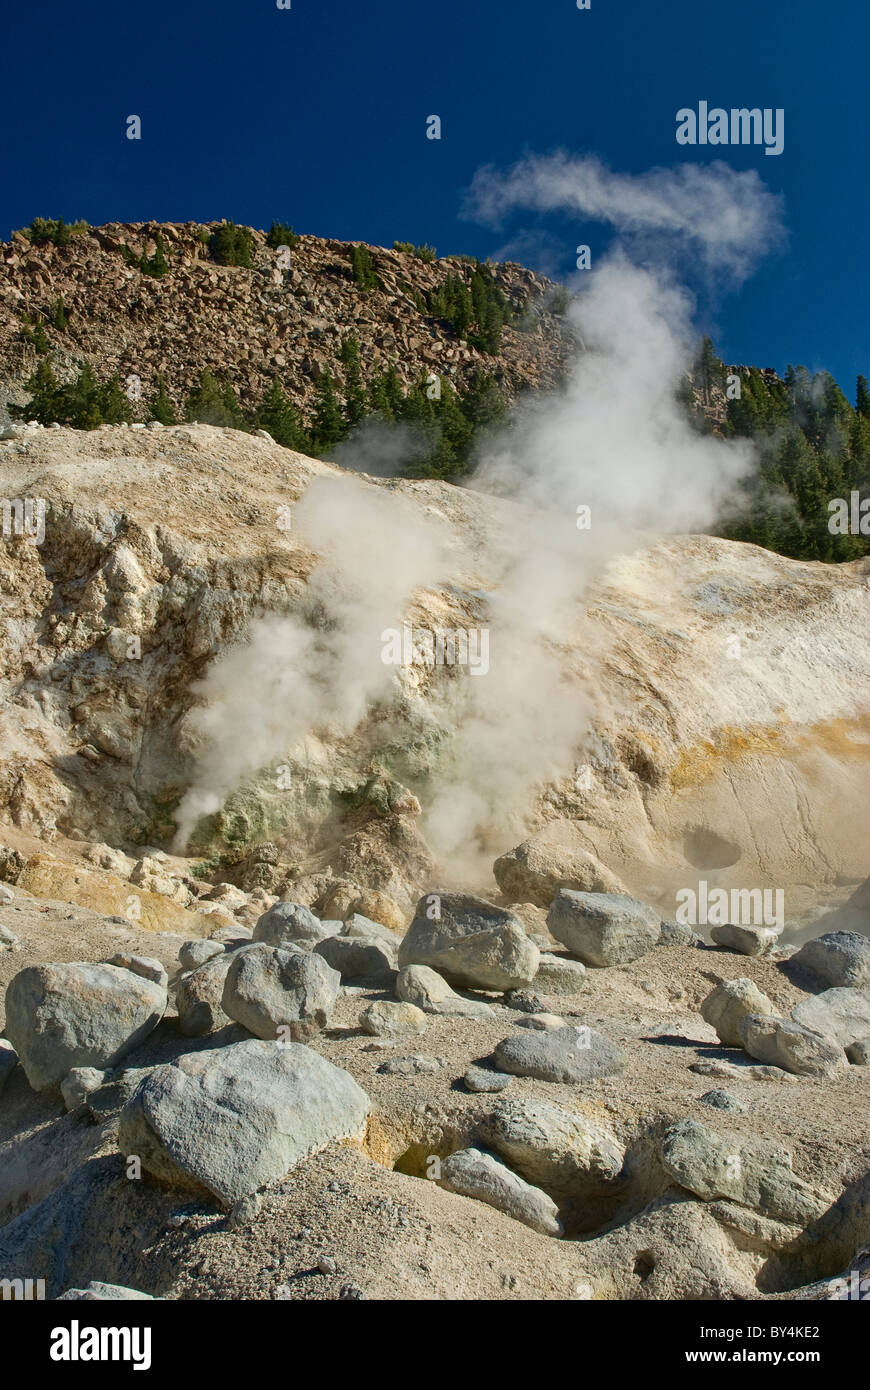 Fumaroles steam vents at Bumpass Hell area in Lassen Volcanic National Park, California, USA - Stock Image